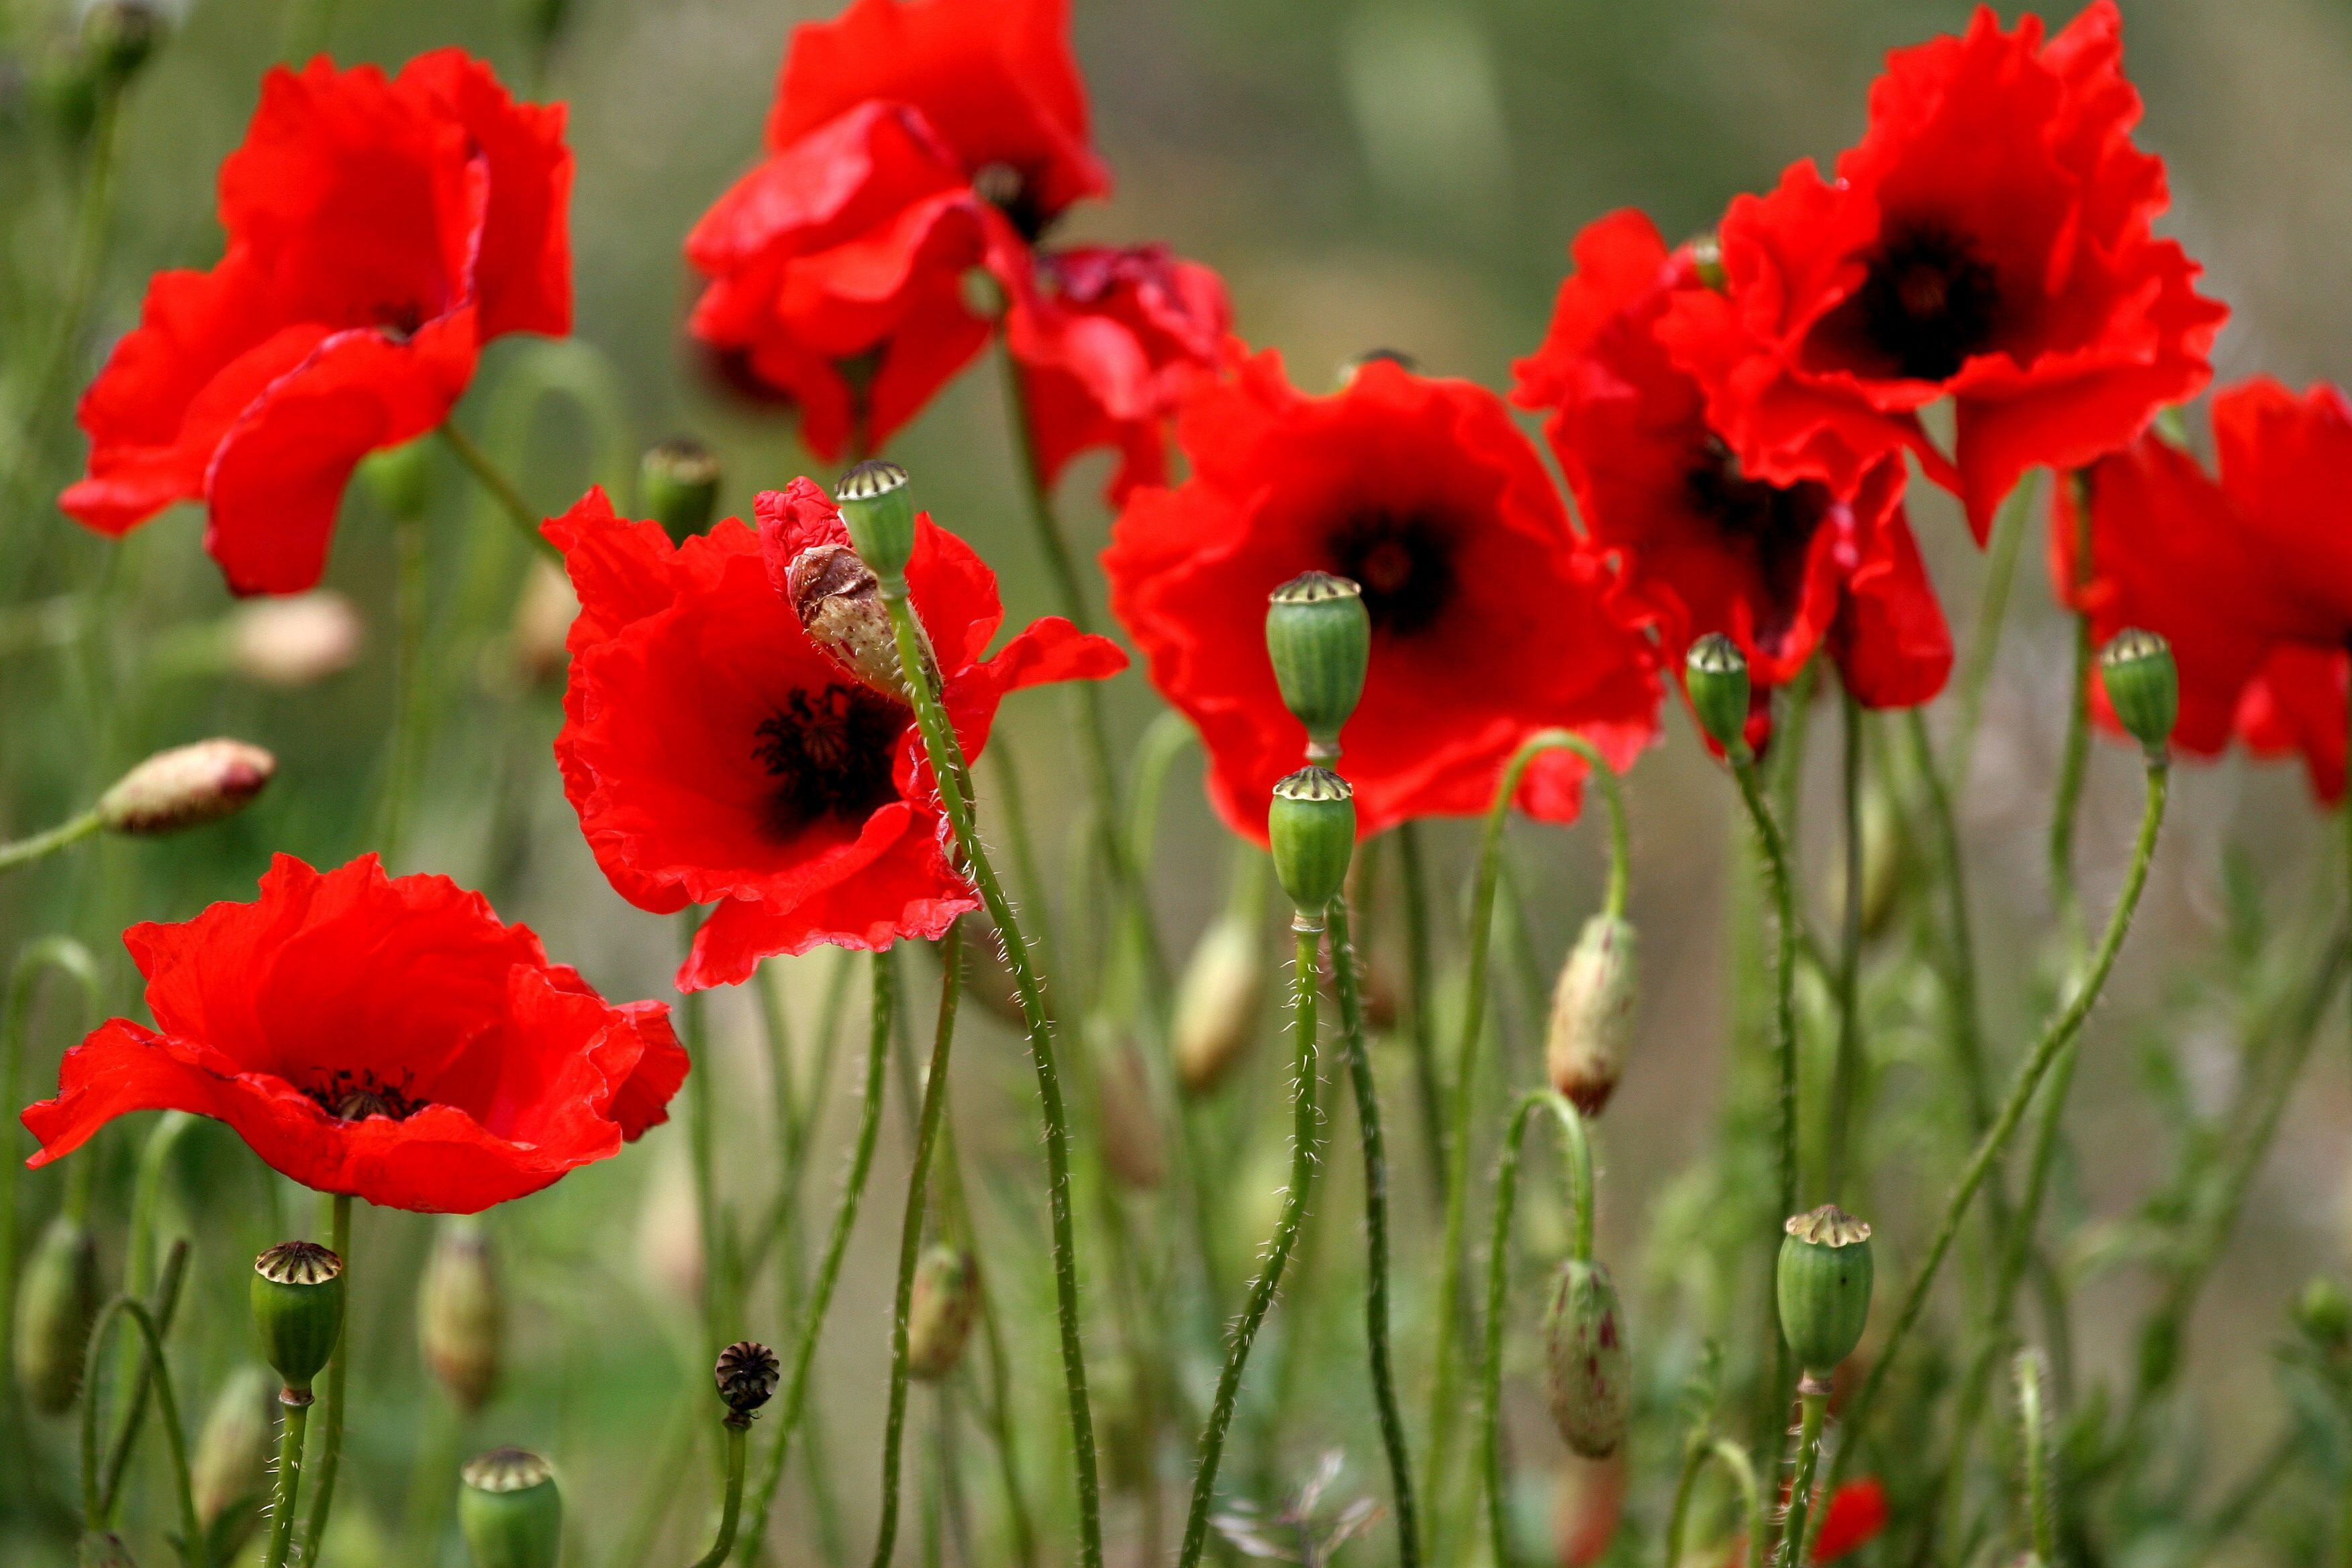 23 Best Armistice Day Poppies Ideas Pinterest Armed Forces And Arms